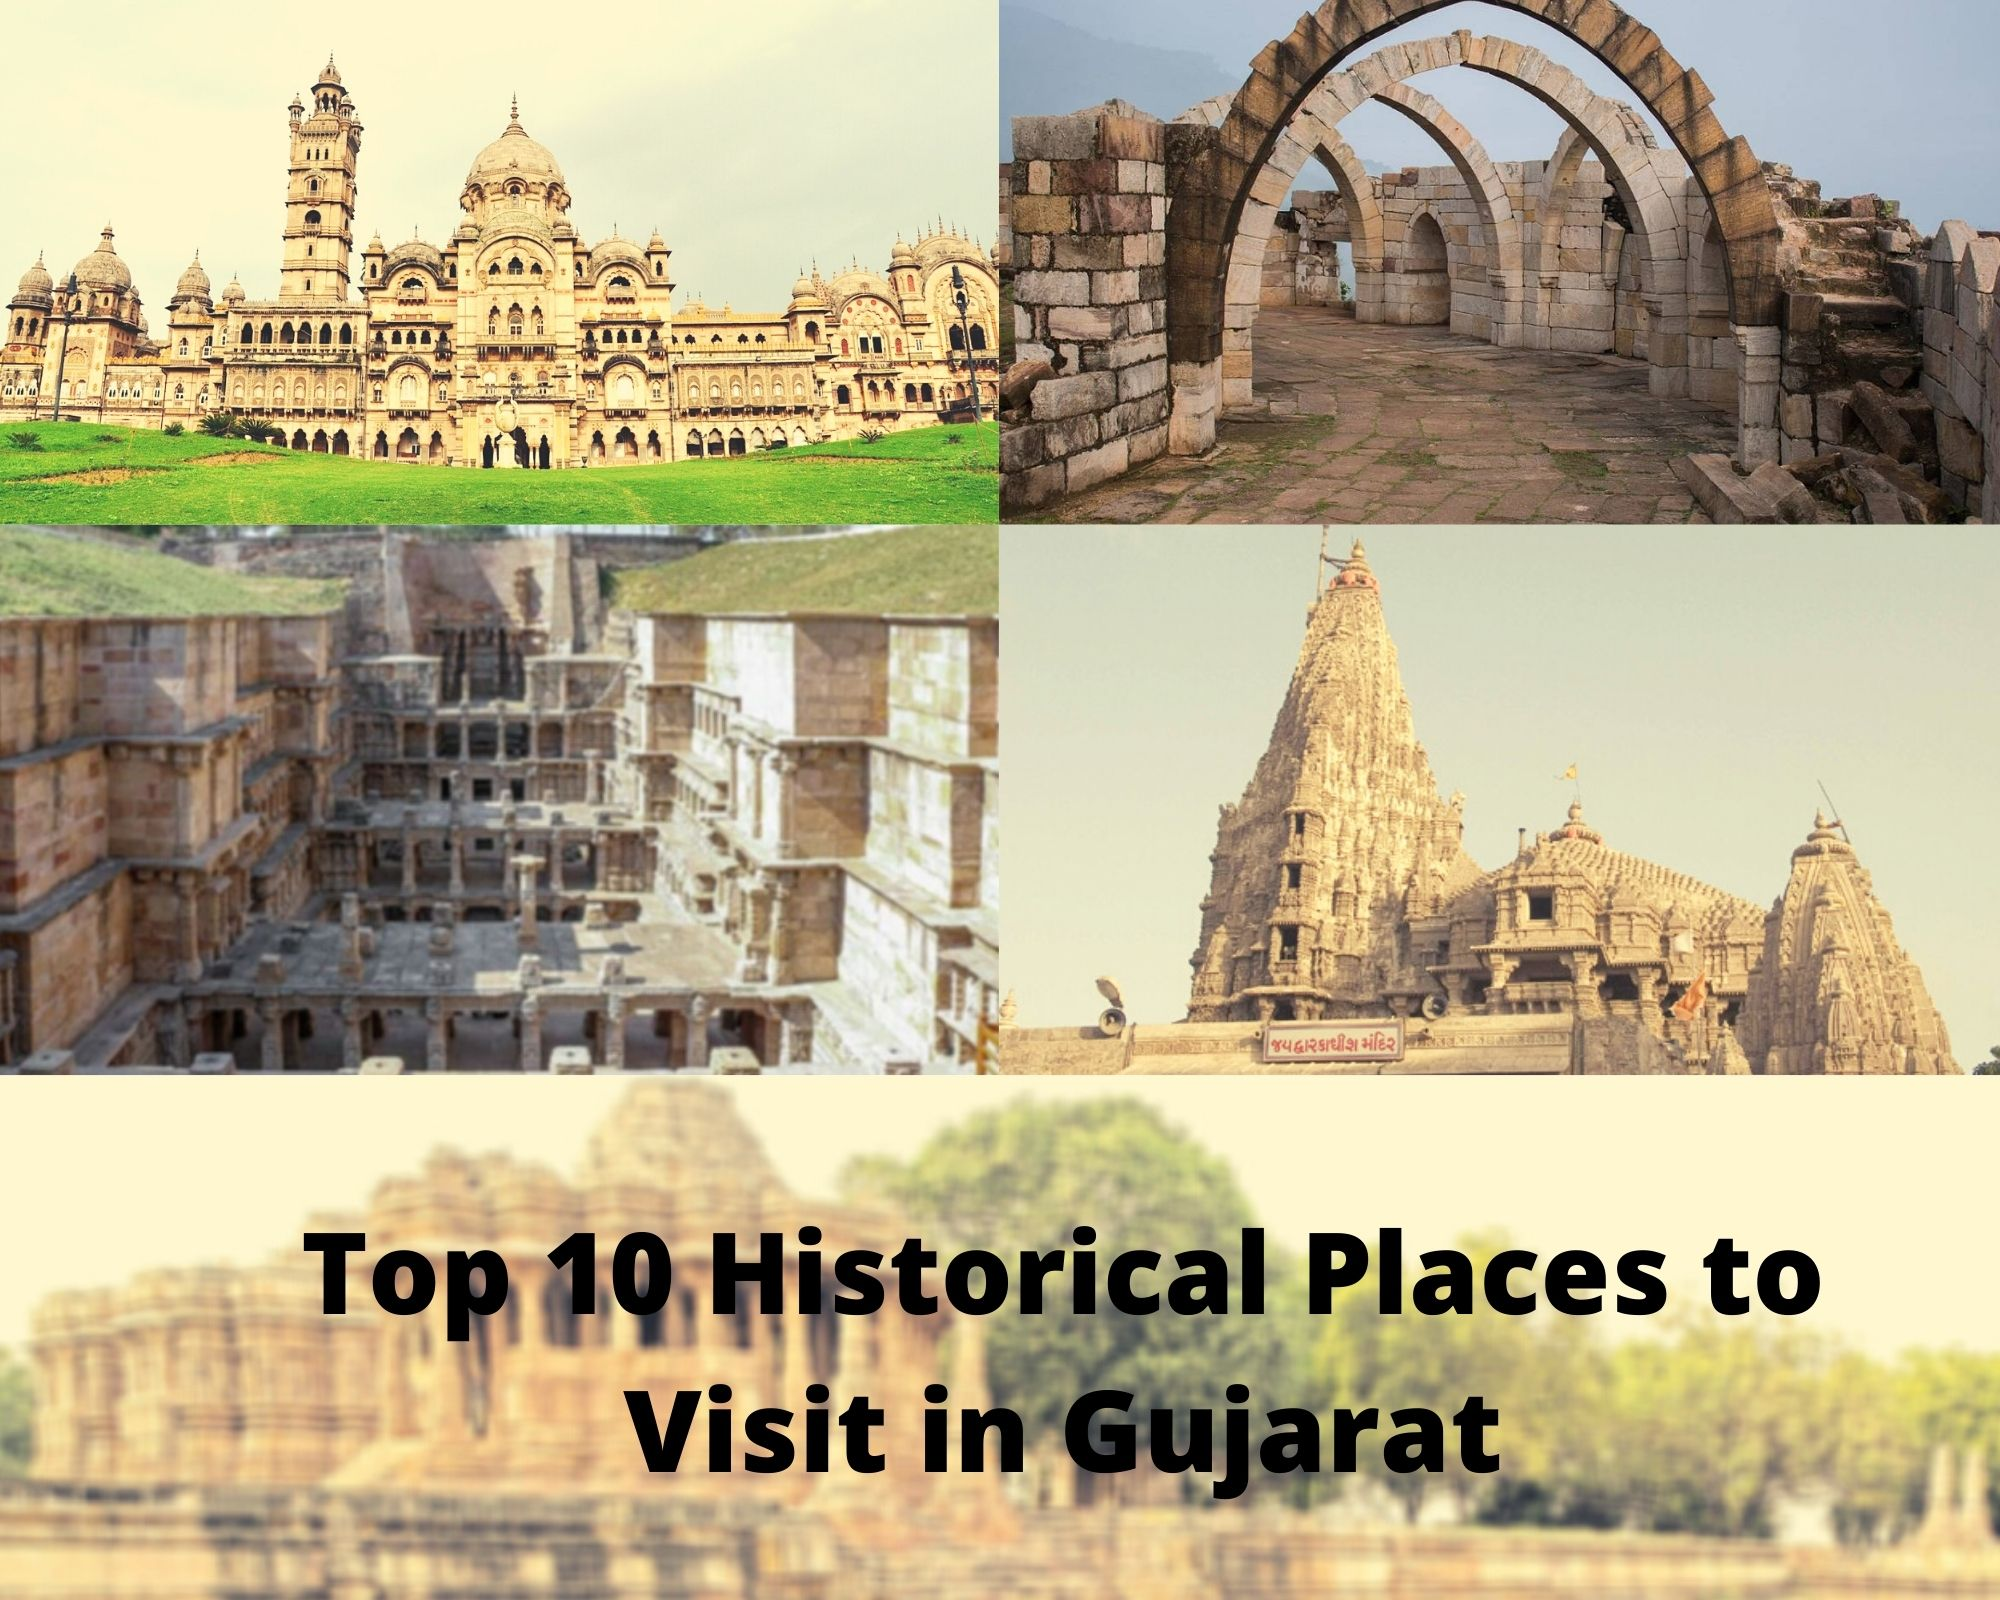 Top 10 Historical Places to Visit in Gujarat | Heritage Places in Gujarat